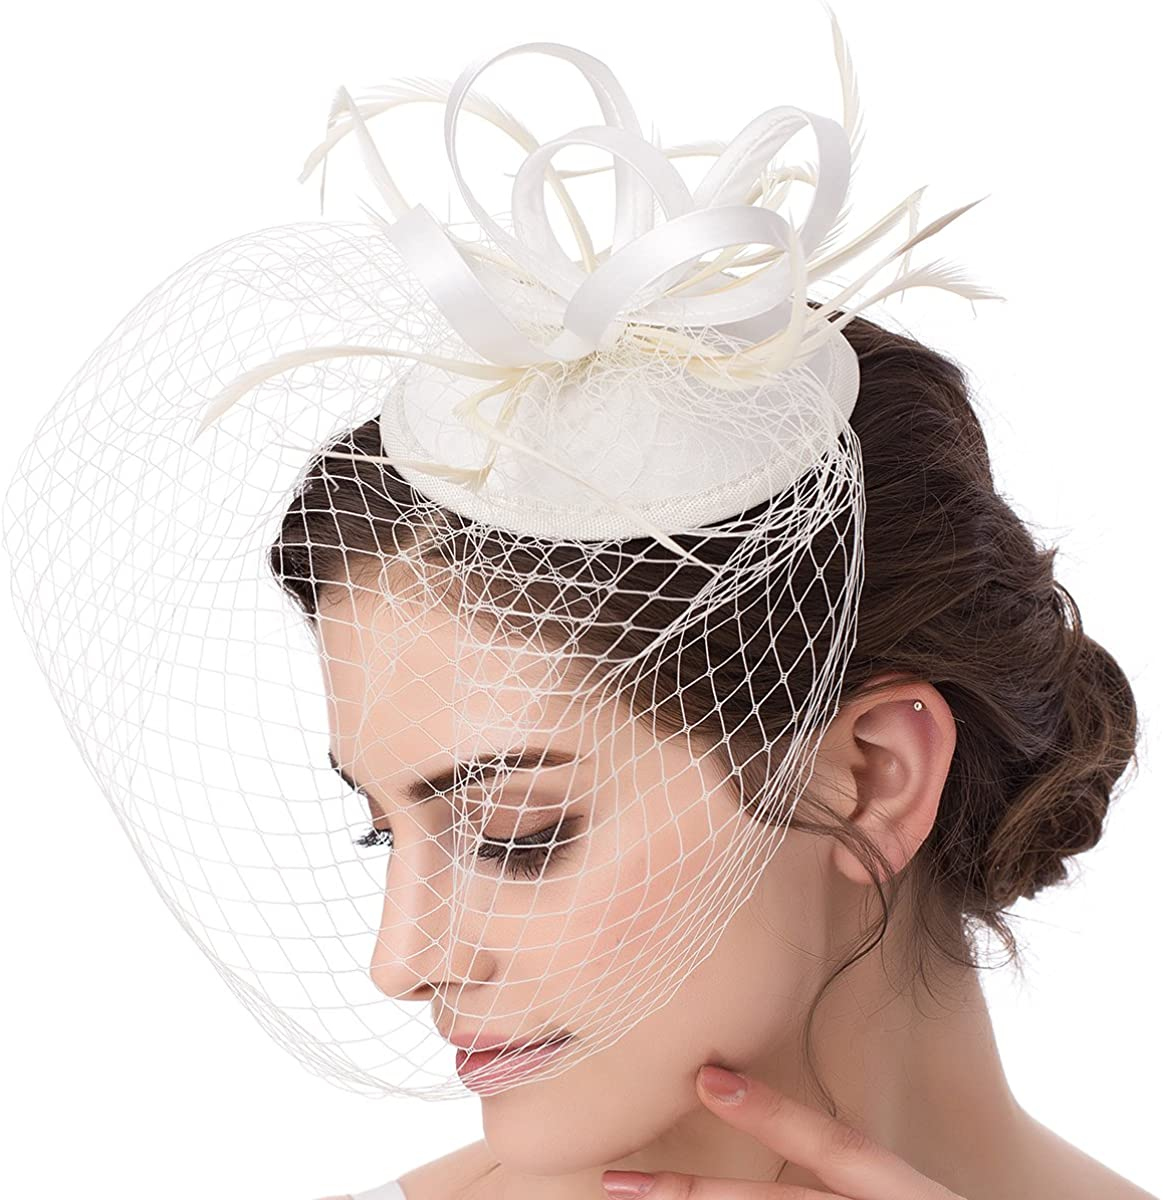 Abaowedding 100% quality warranty Feather Fascinator Popularity Cocktail Party Hair Pillbox Clip